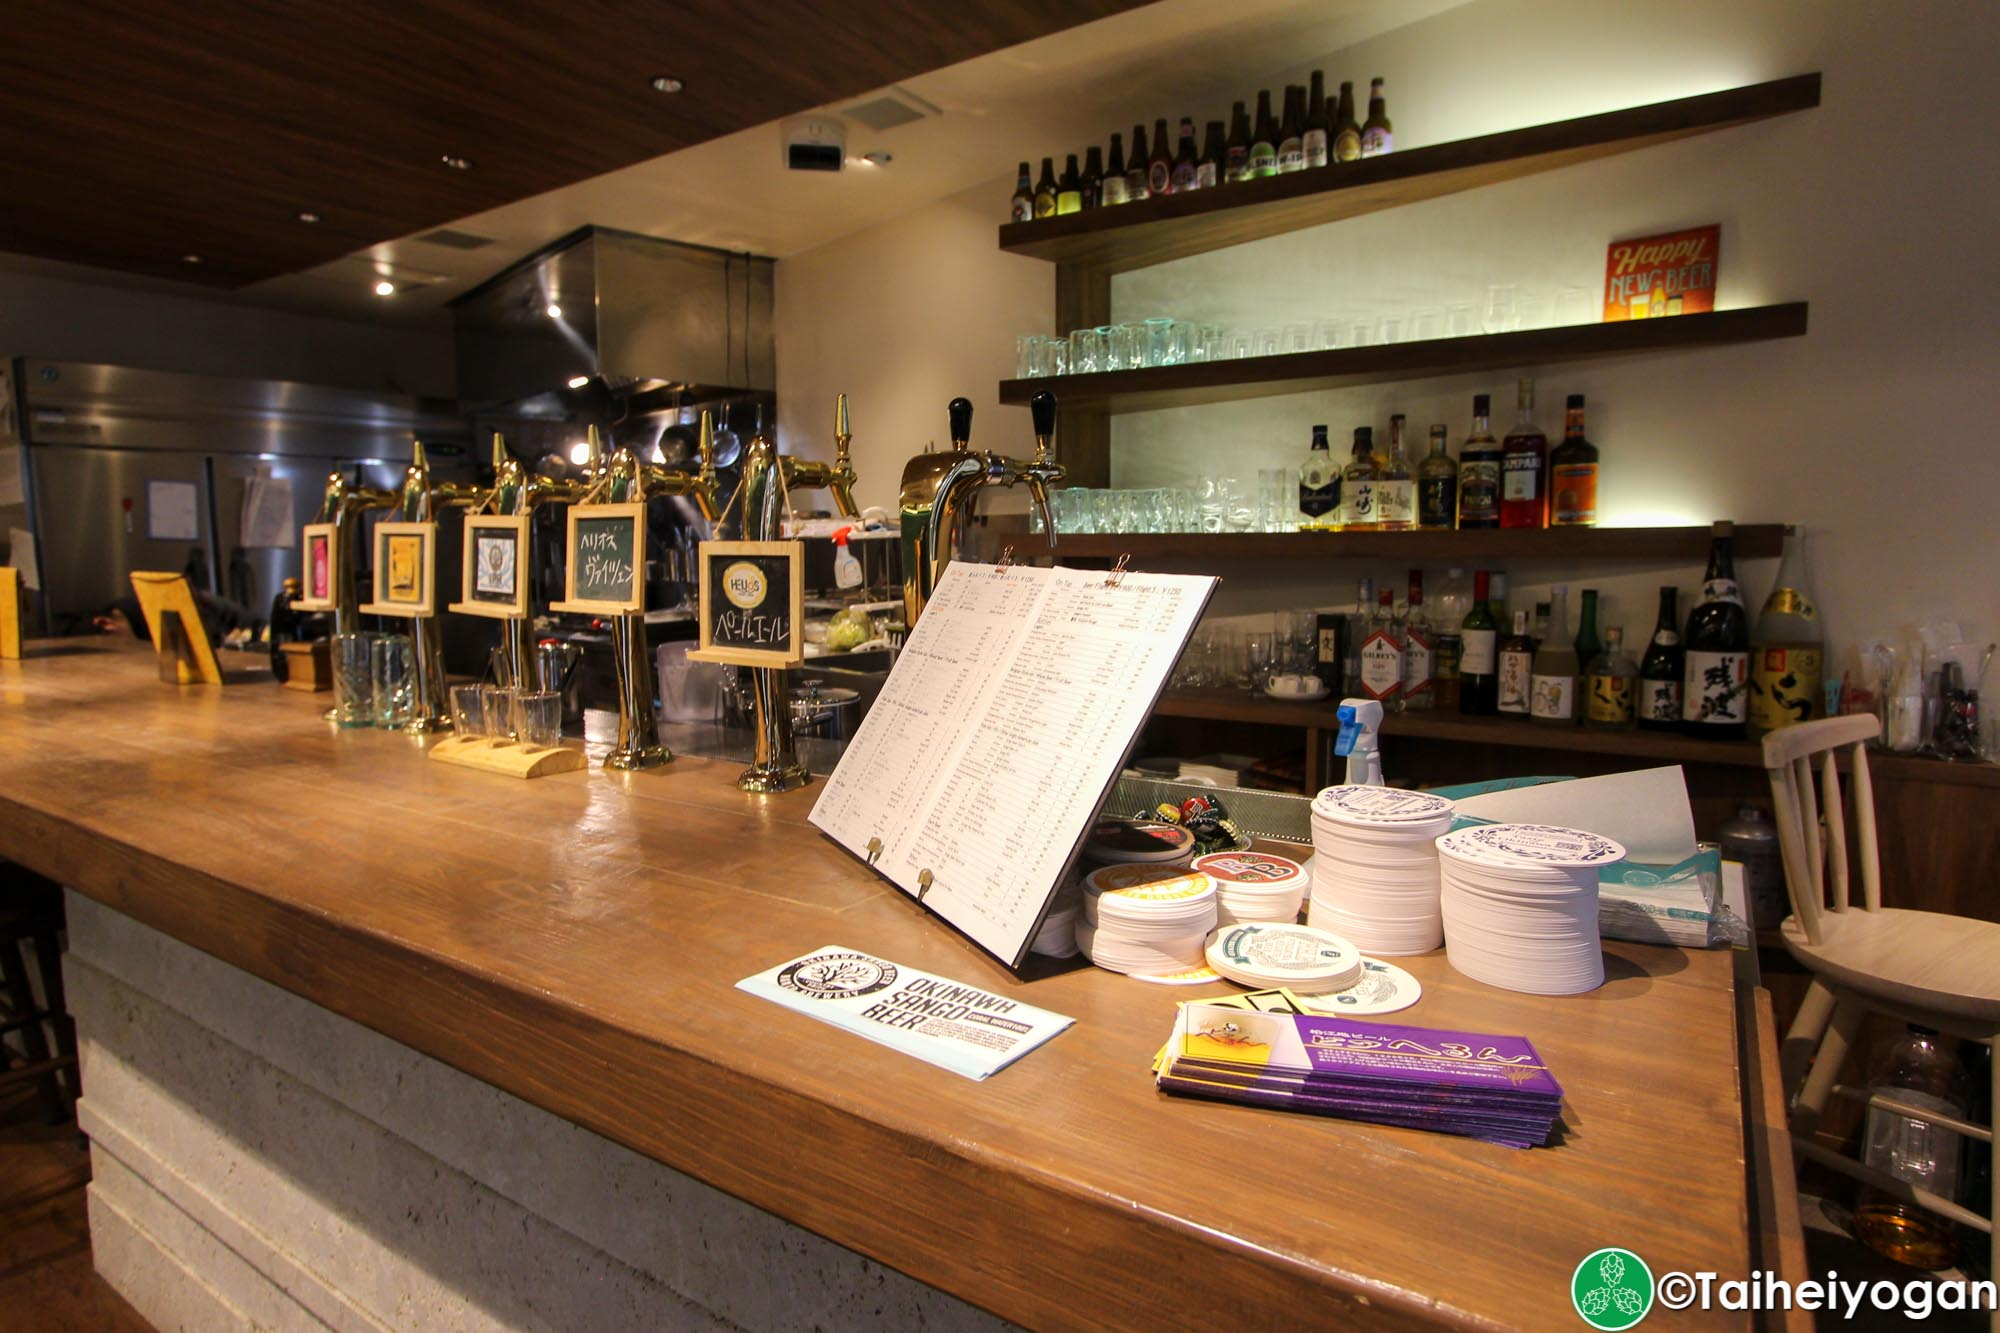 Taste of Okinawa - Interior - Beer Taps